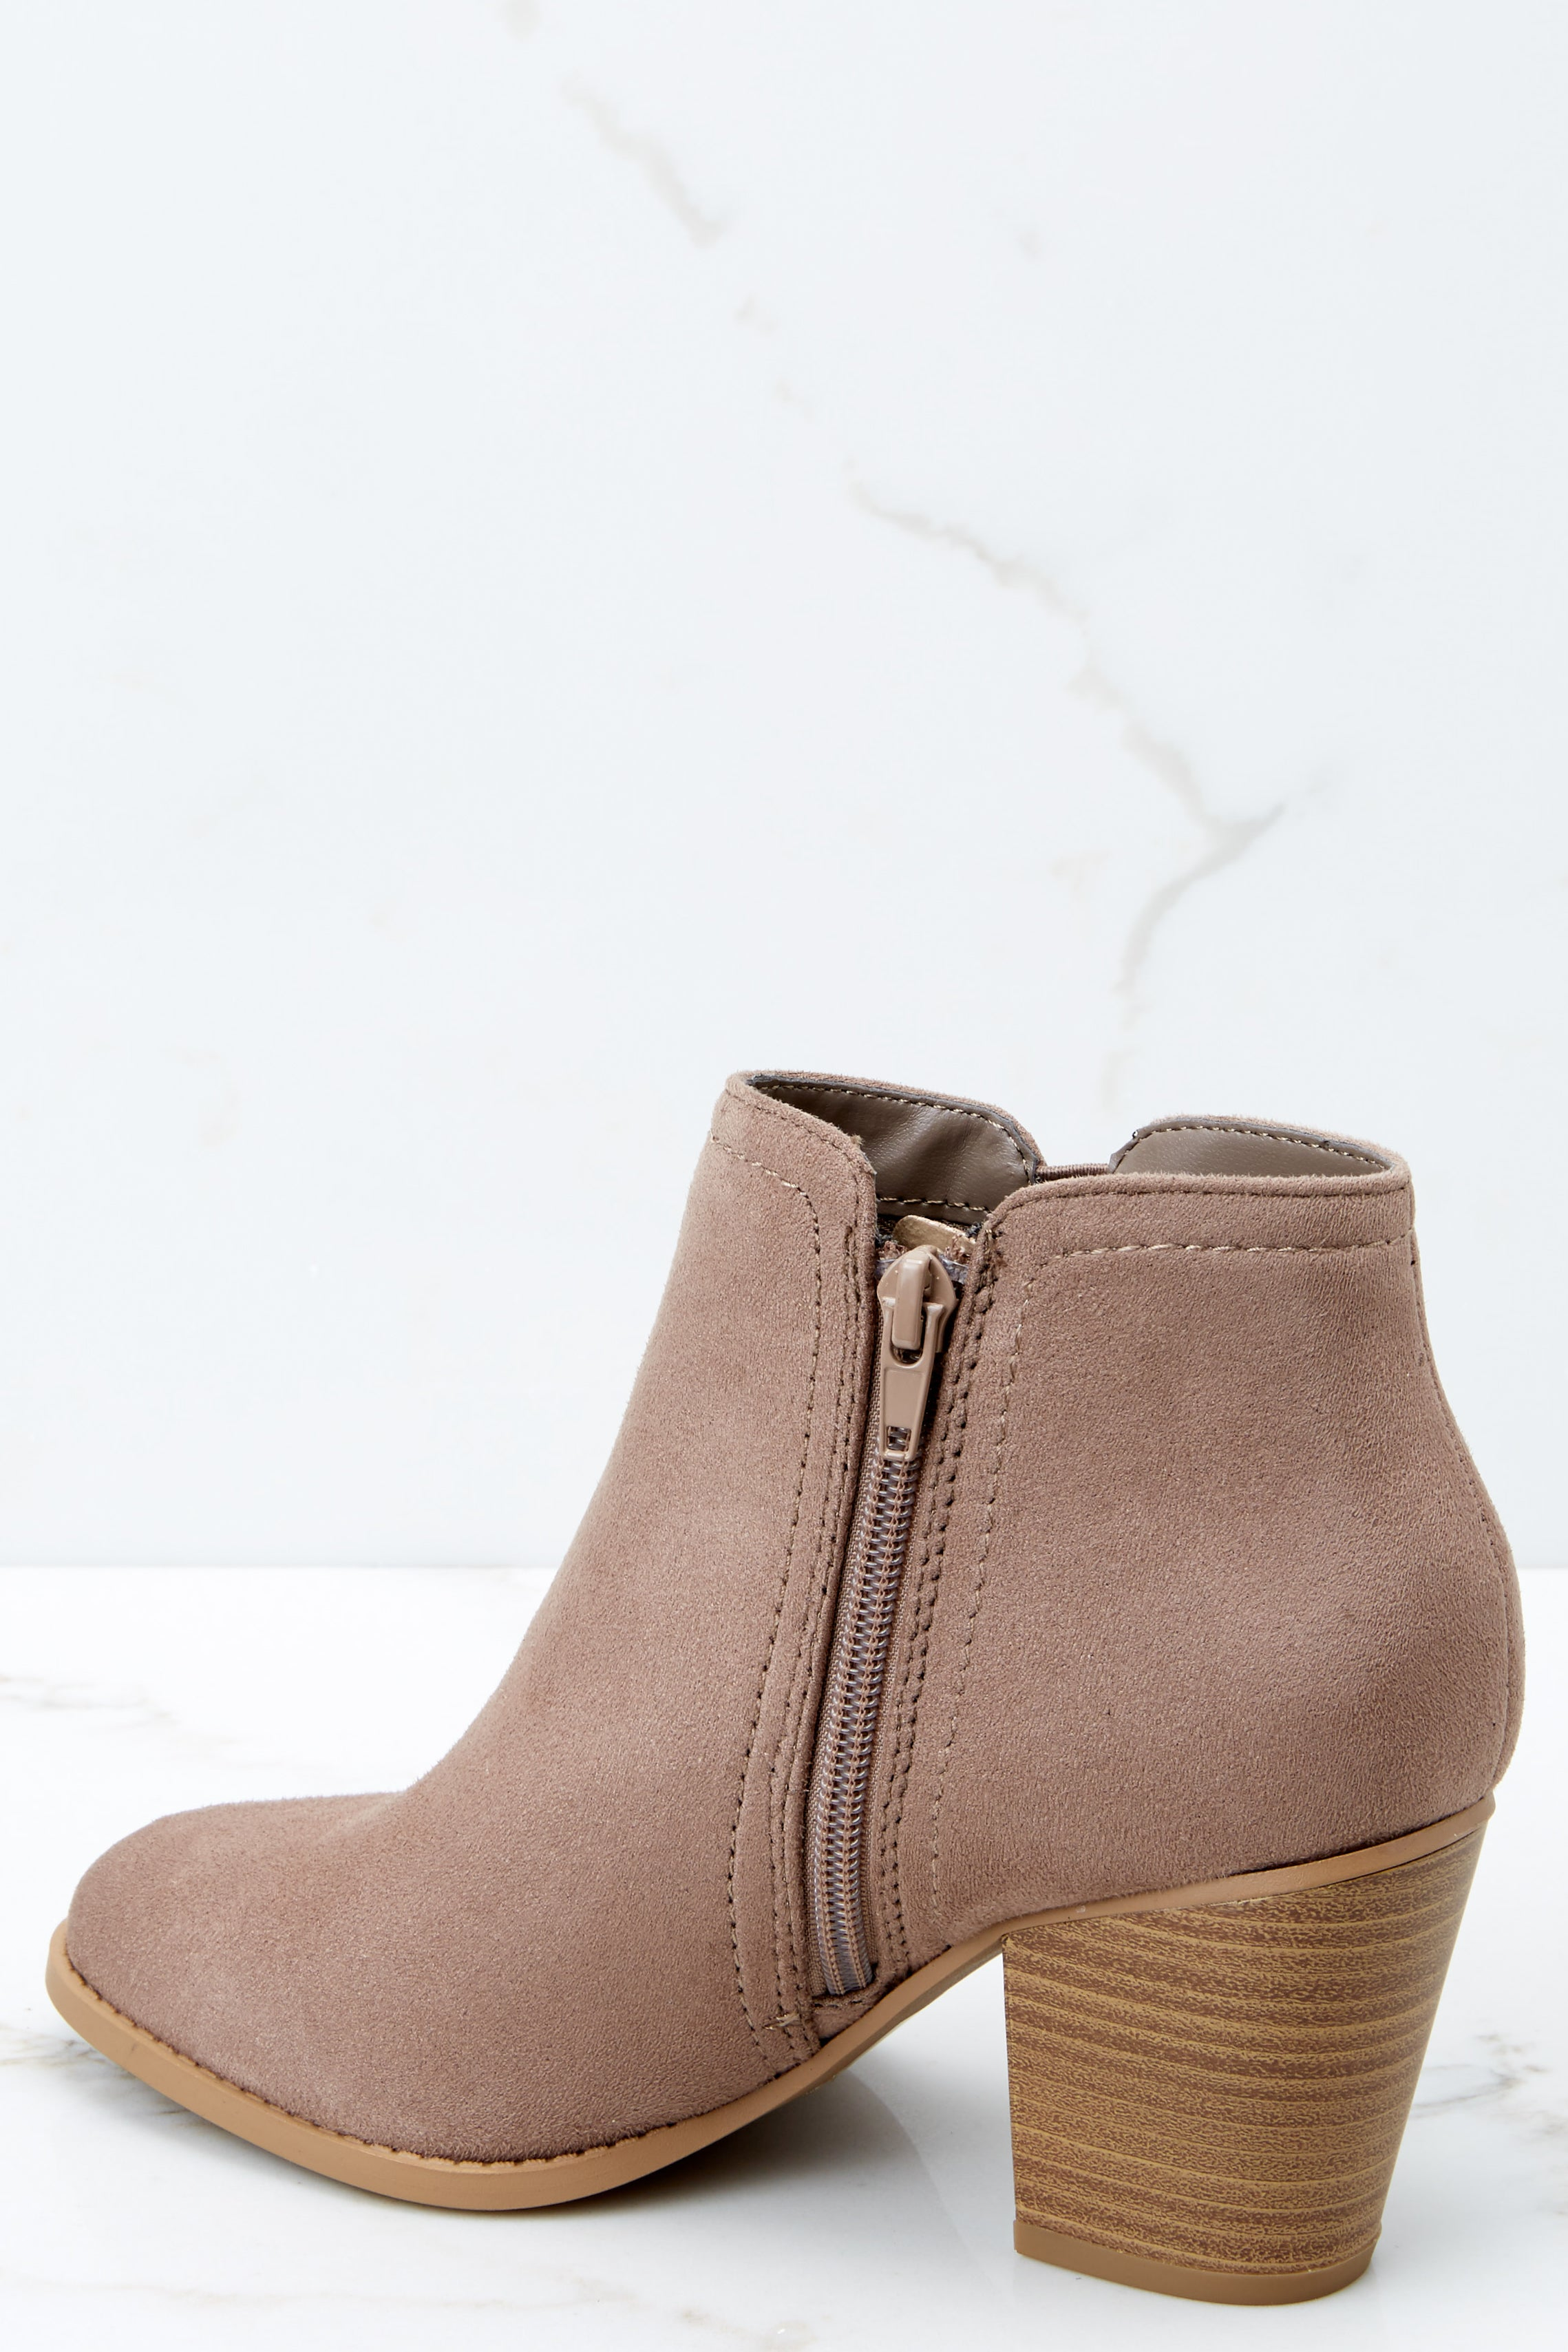 028fb8c5d8f7 Trendy Taupe Ankle Bootie - Ankle Booties - Boots -  36.00 – Red Dress